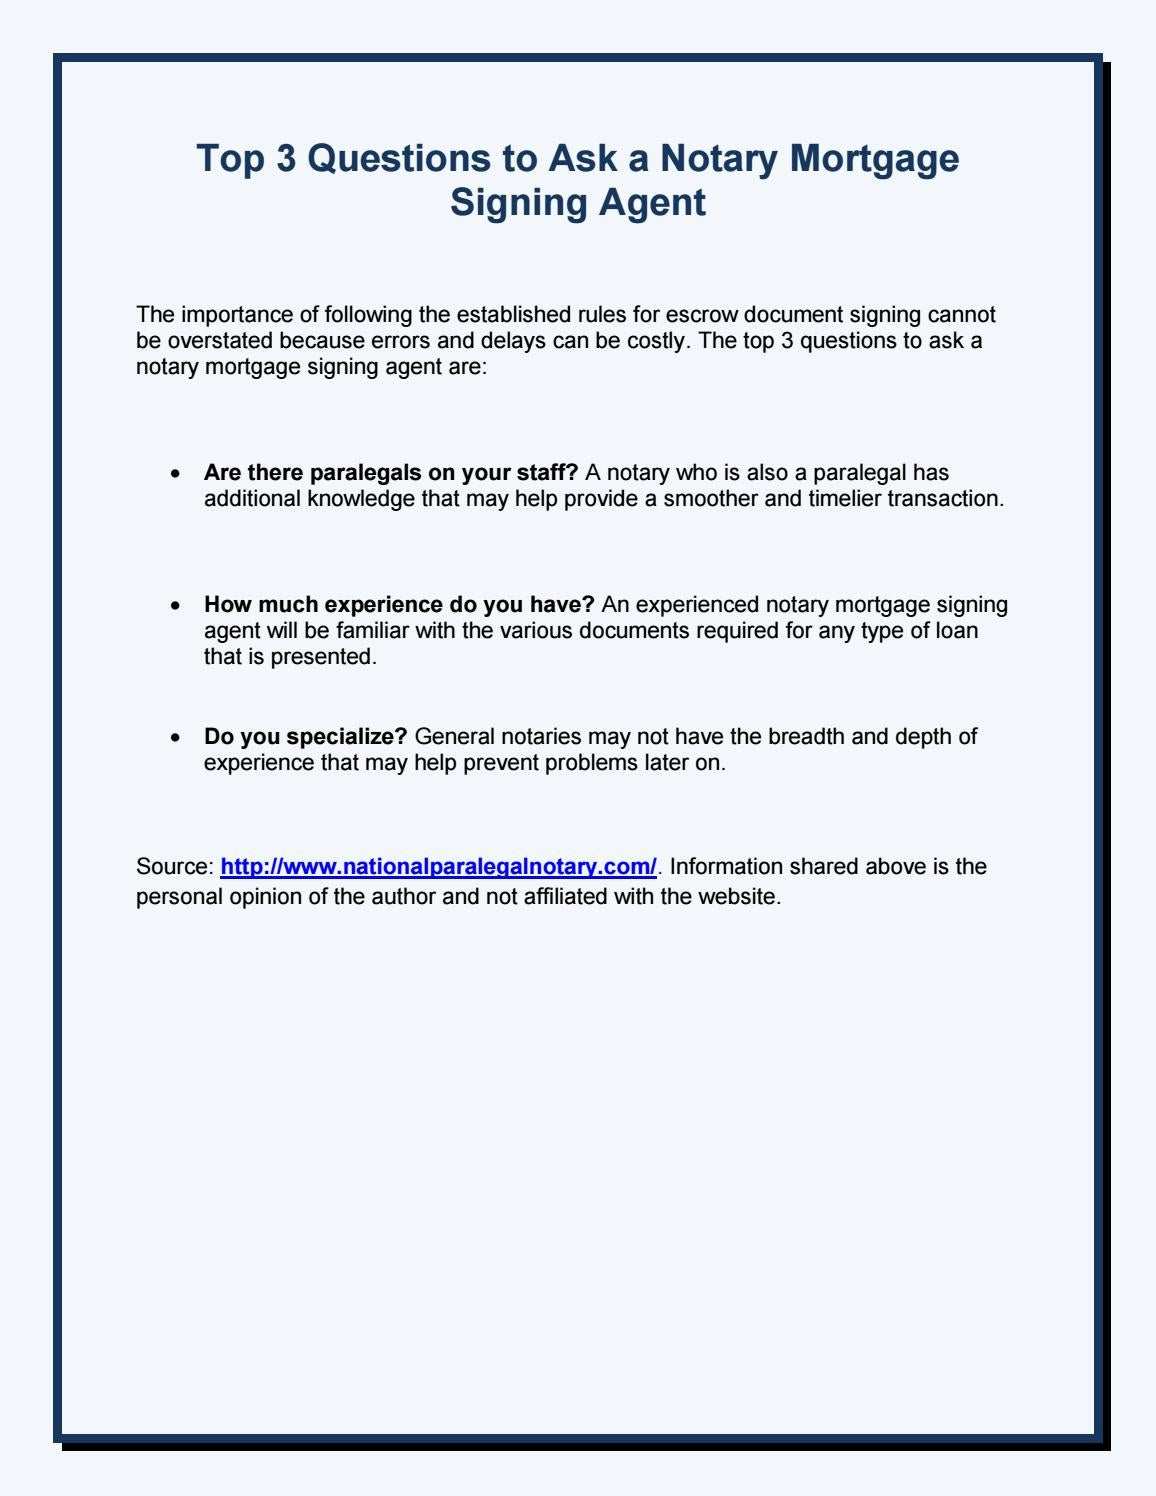 Top 3 Questions to Ask a Notary Mortgage Signing Agent by